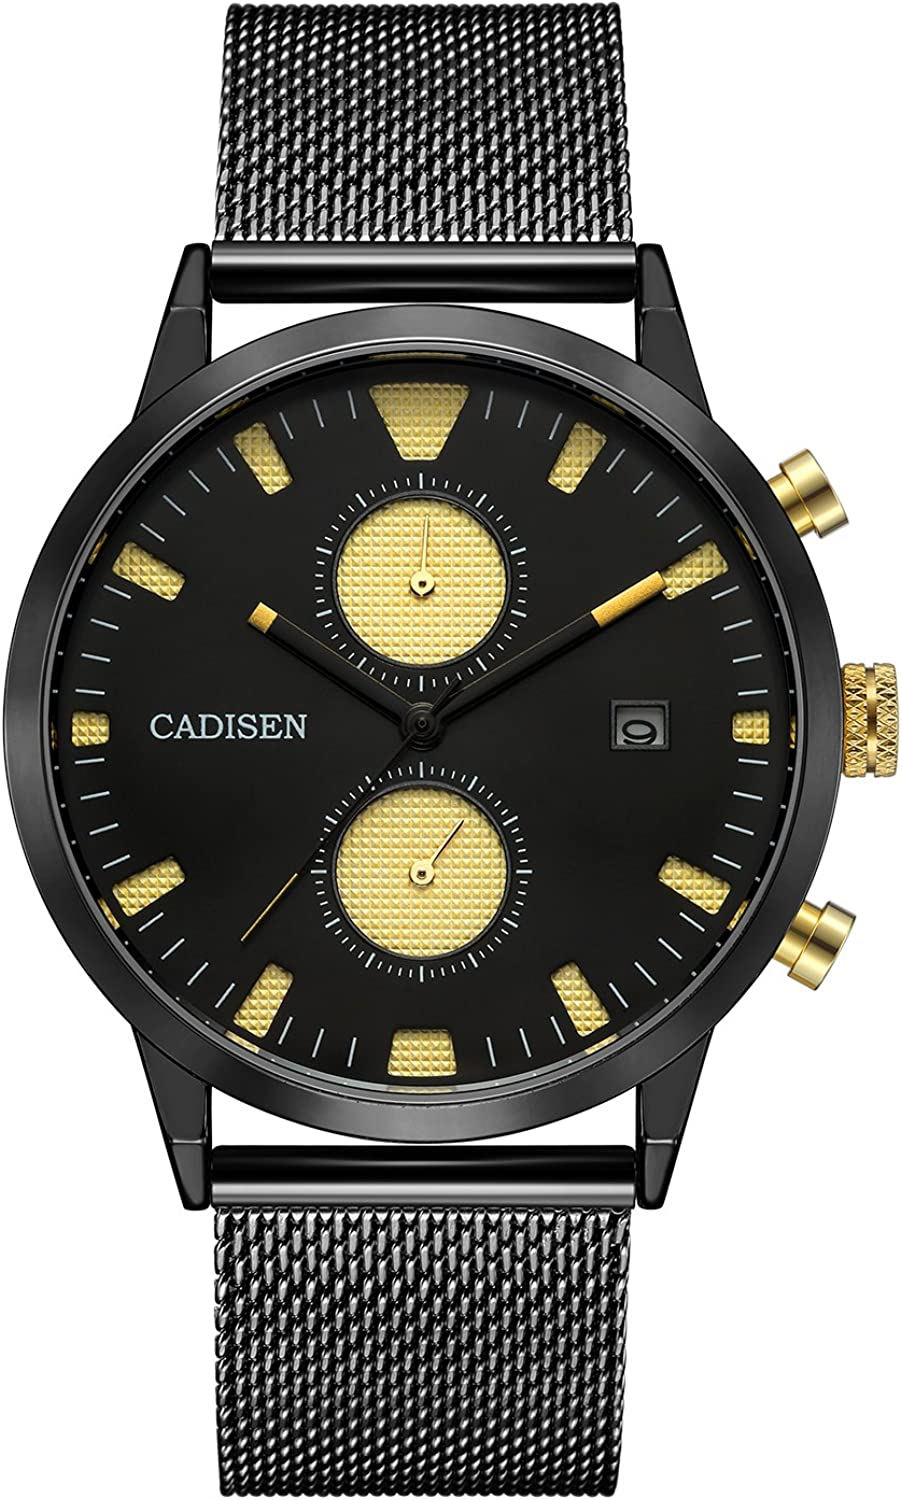 CADISEN Chronograph Luxury Black Gold Classic Waterproof 43mm case Quartz Mens Watches with Steel Mesh Band C2023MNNB